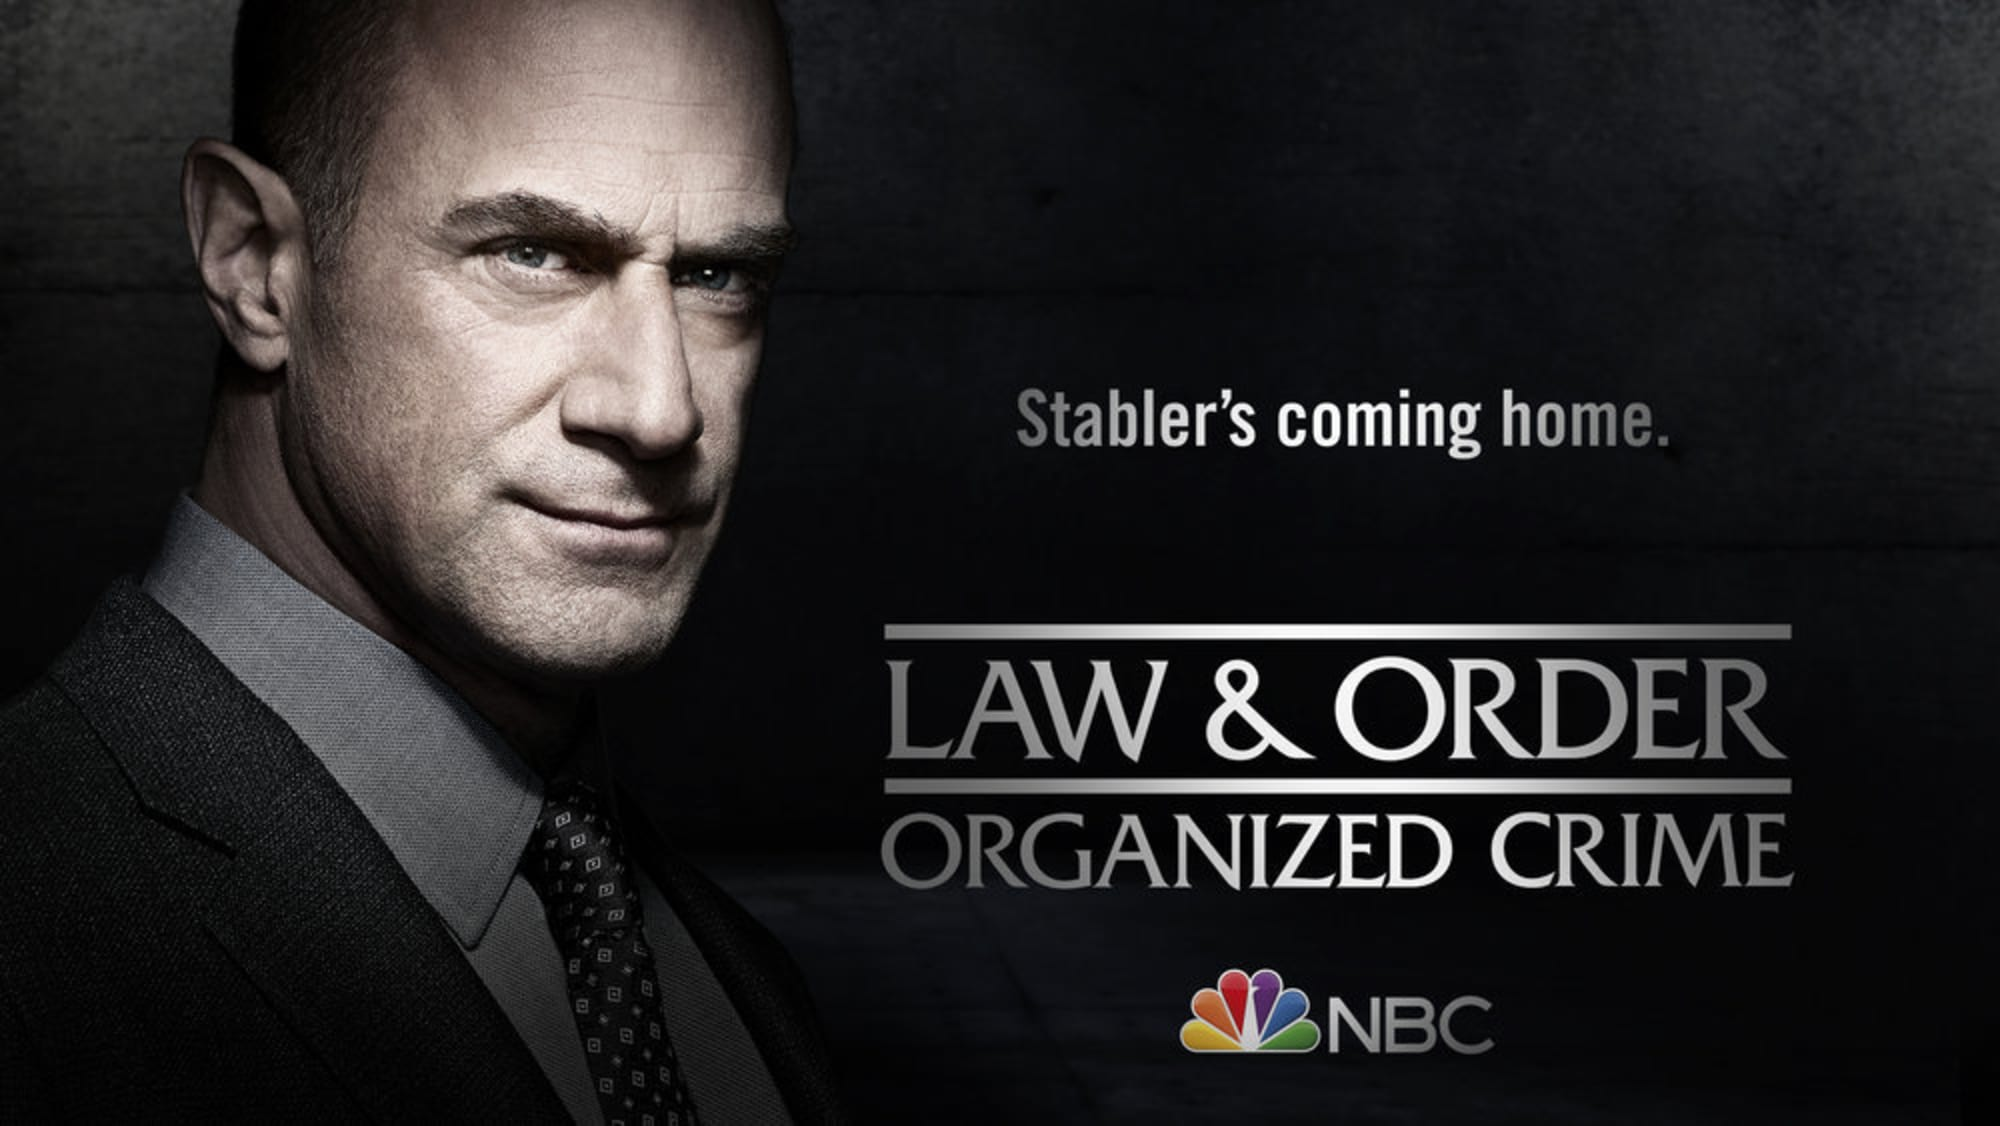 Is Law & Order: Organized Crime on Netflix?